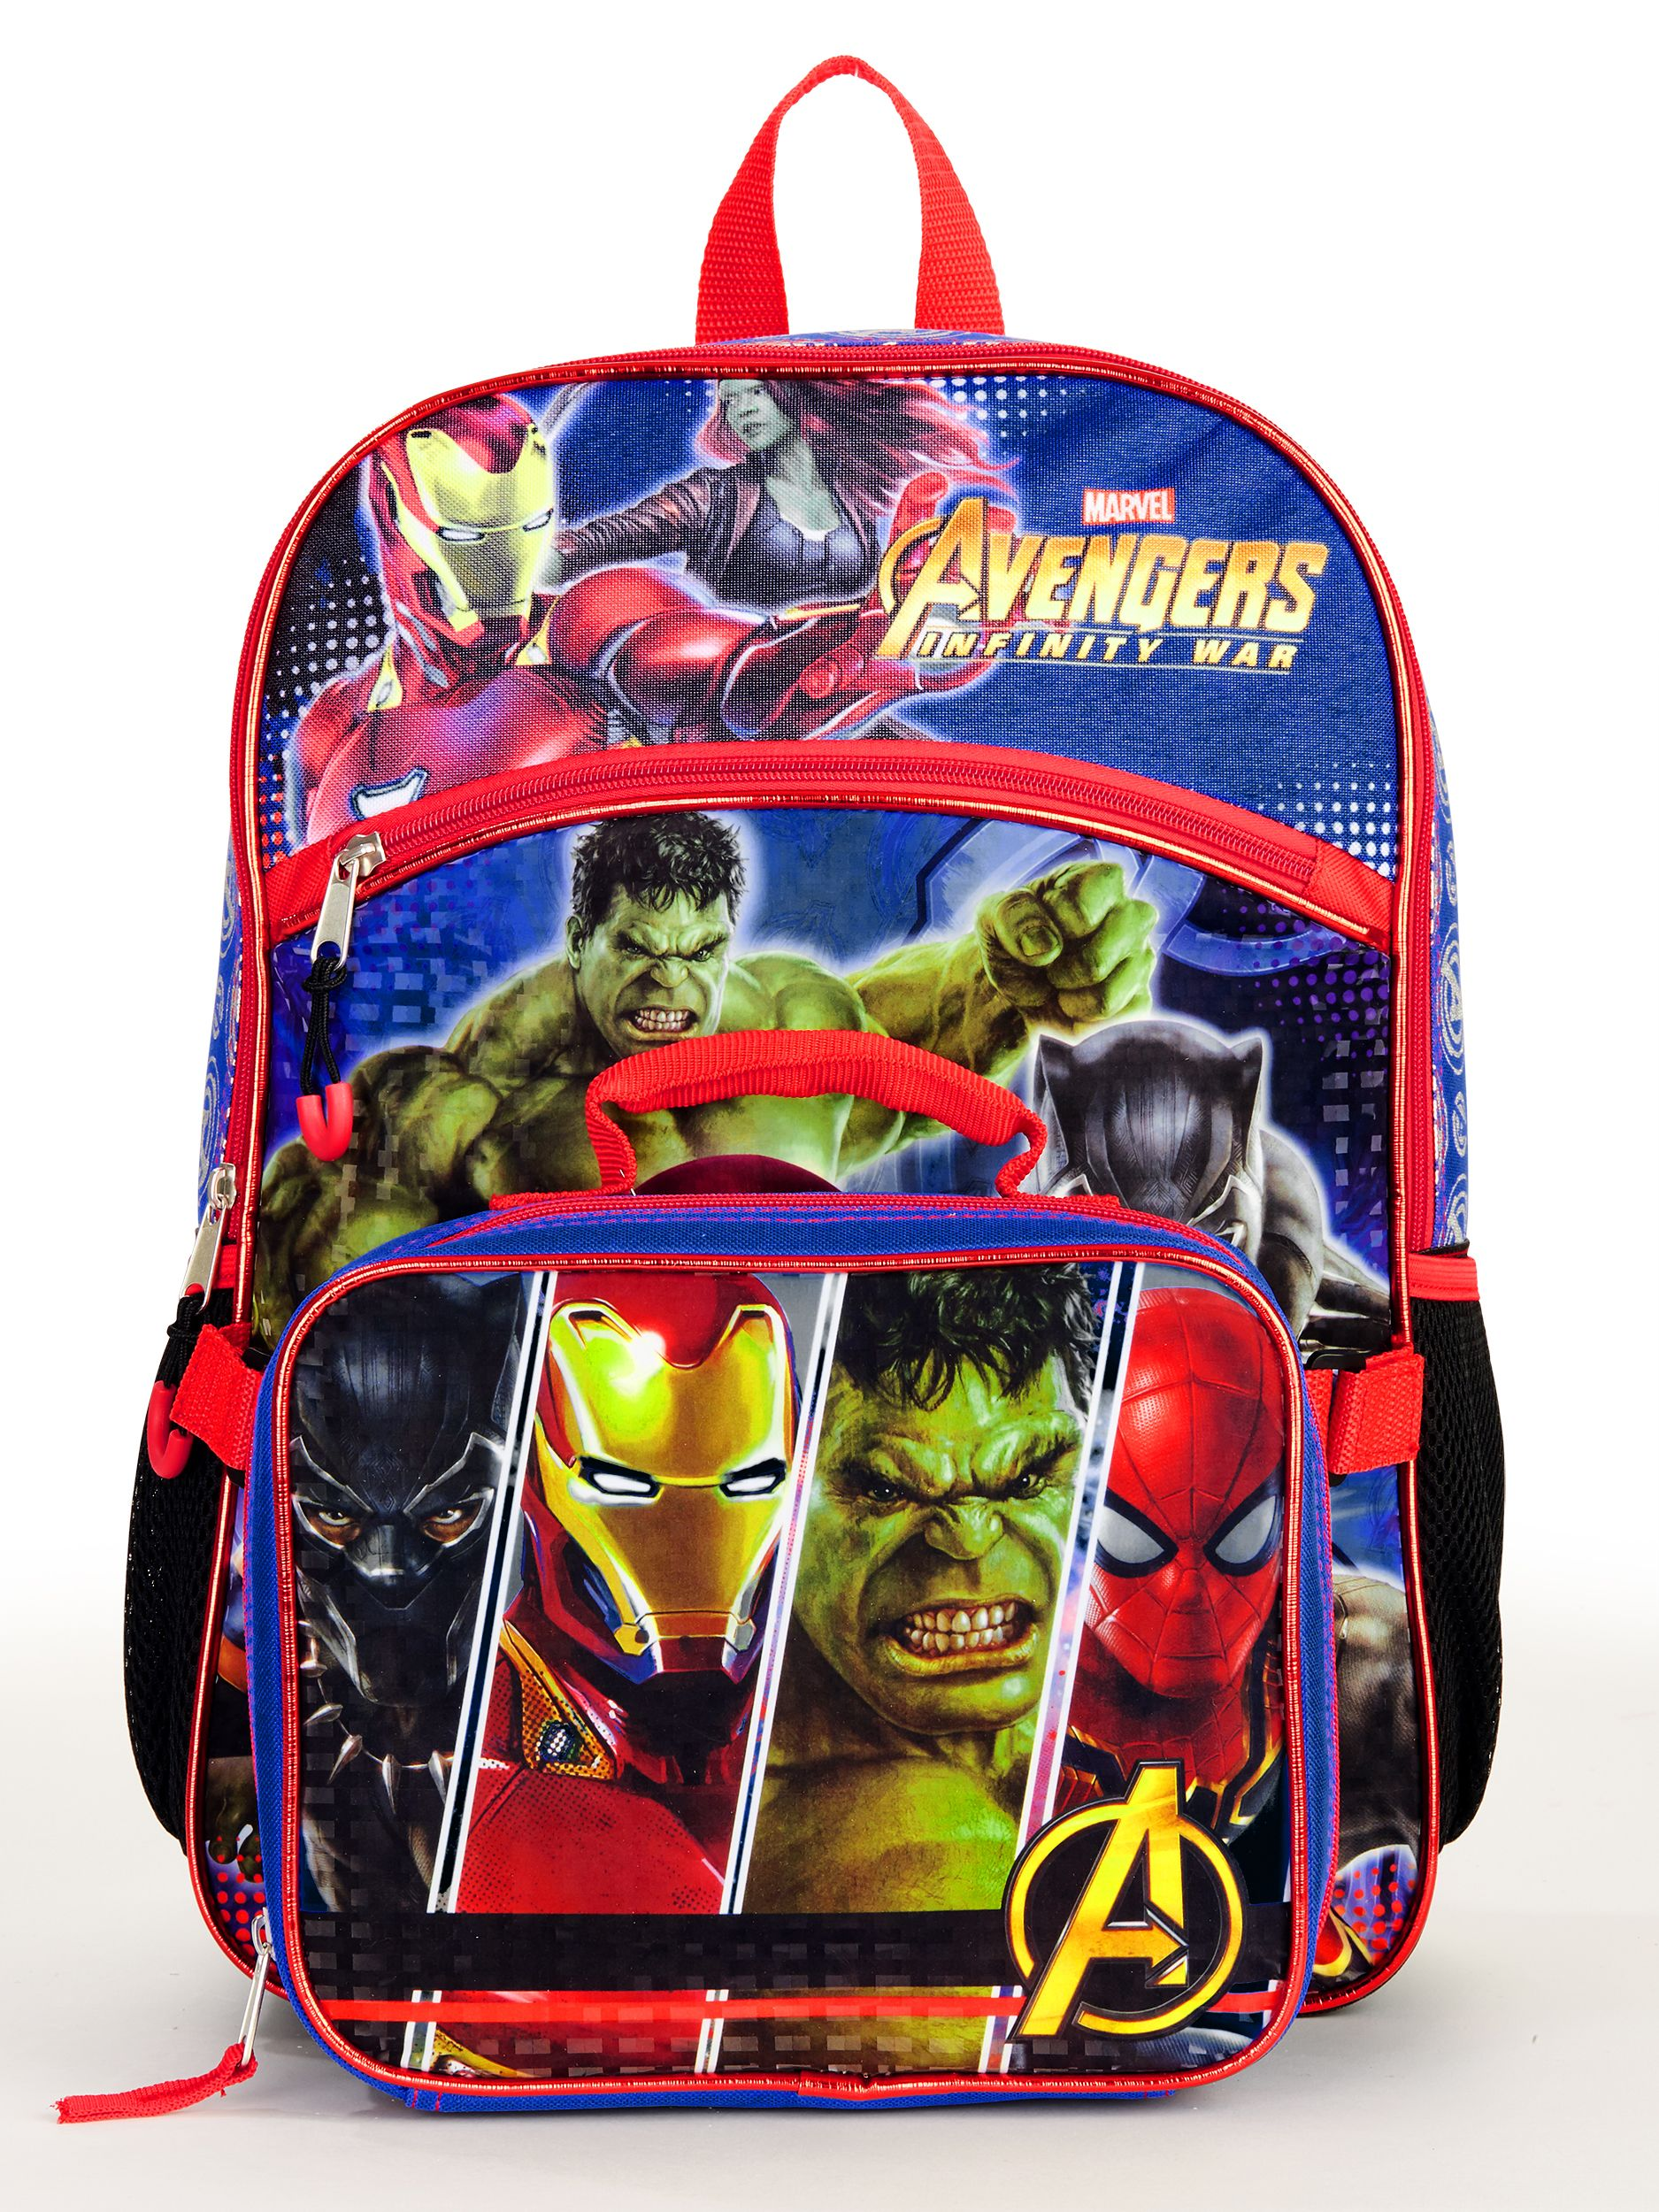 The Avengers Avengers Infinity War Boys Backpack With